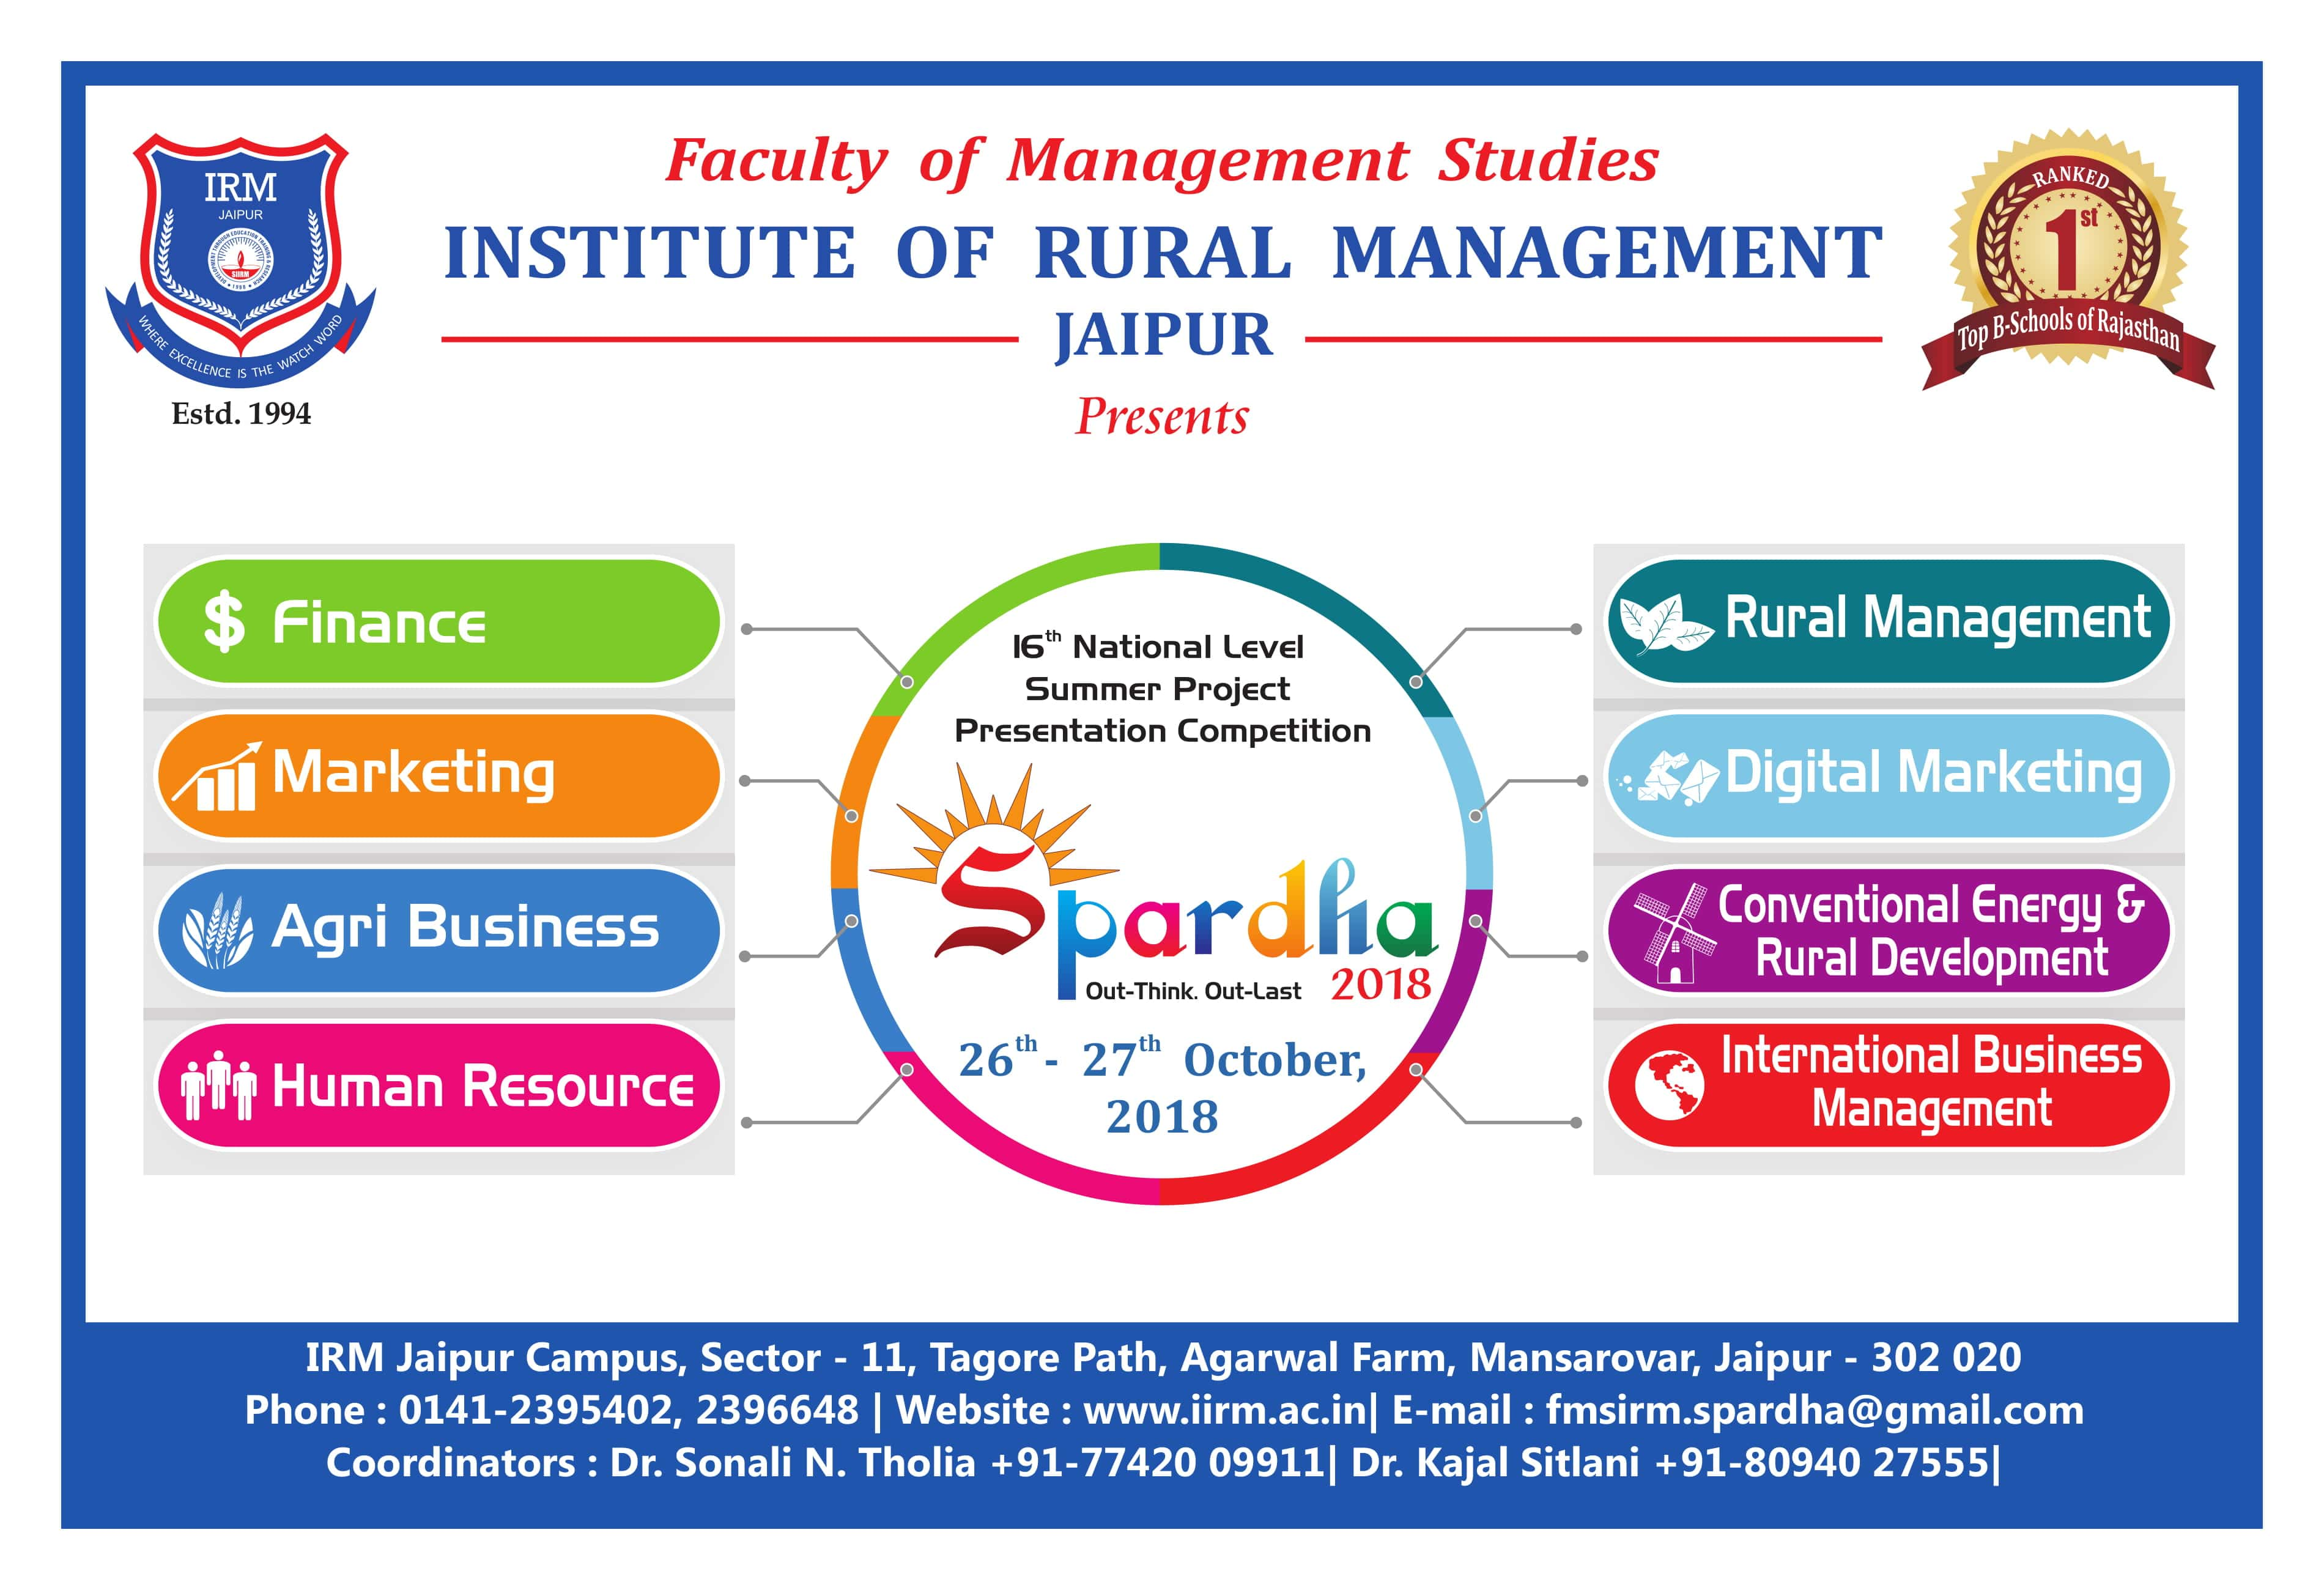 Spardha - 2018 (Out - Think Out - Last) - top ranked mba colleges in jaipur Rajasthan india